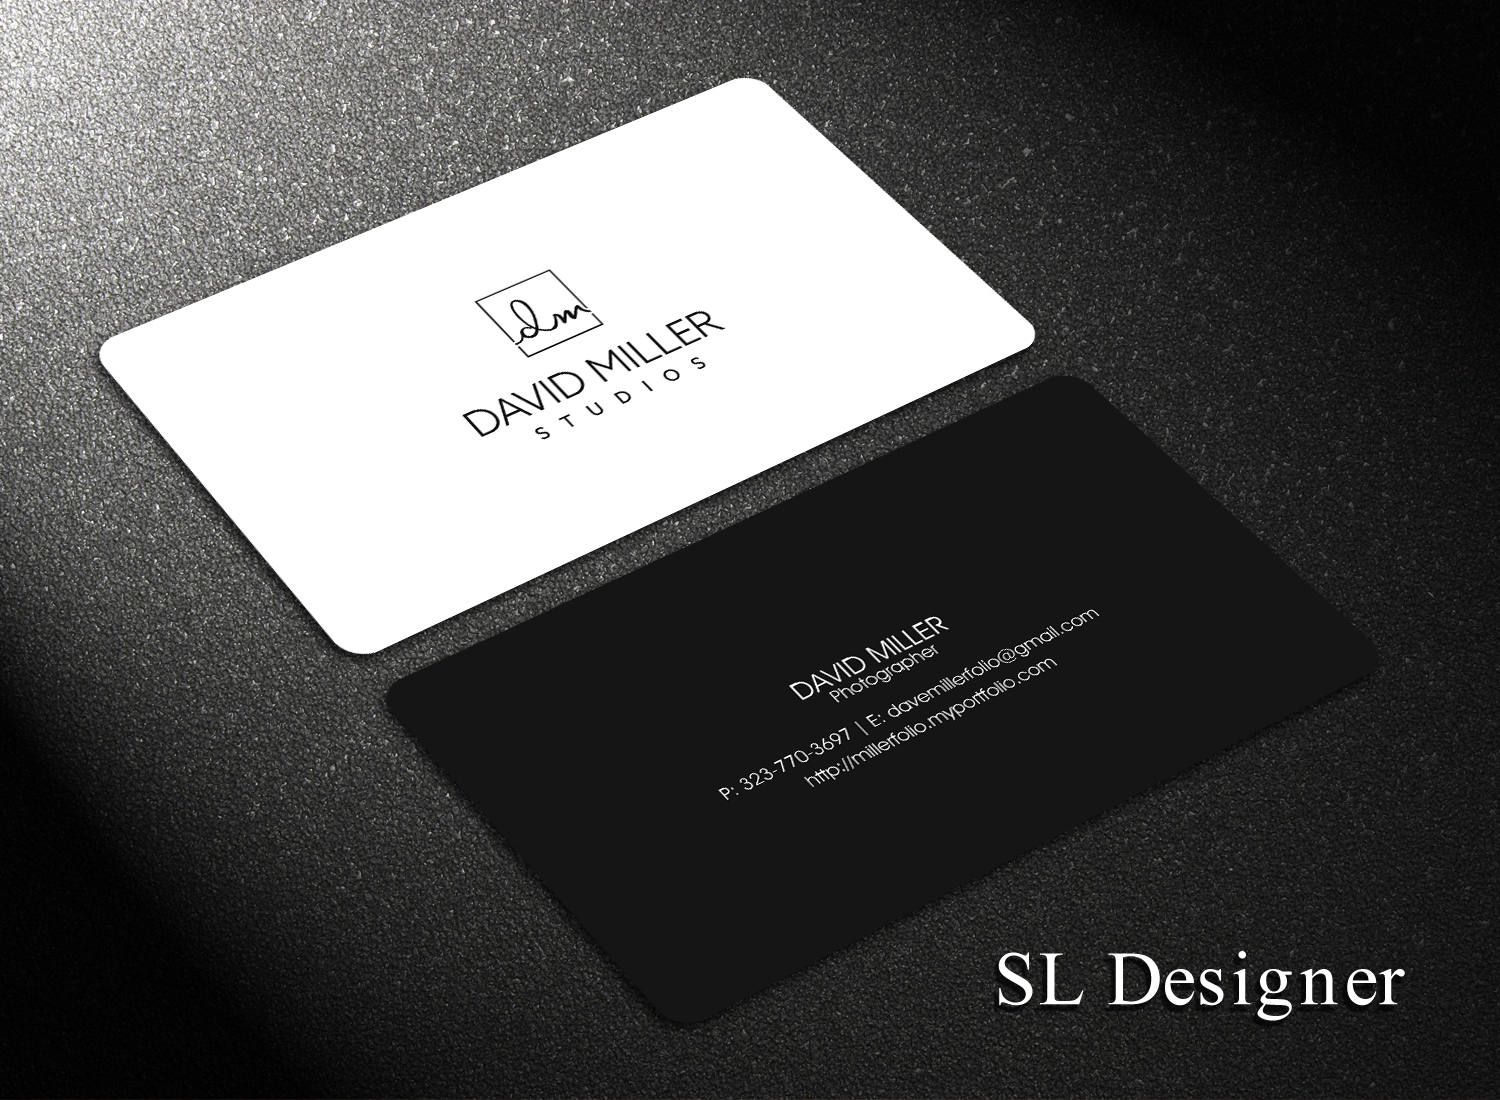 Business Card Design By SL Designer For The Cavernlite Group